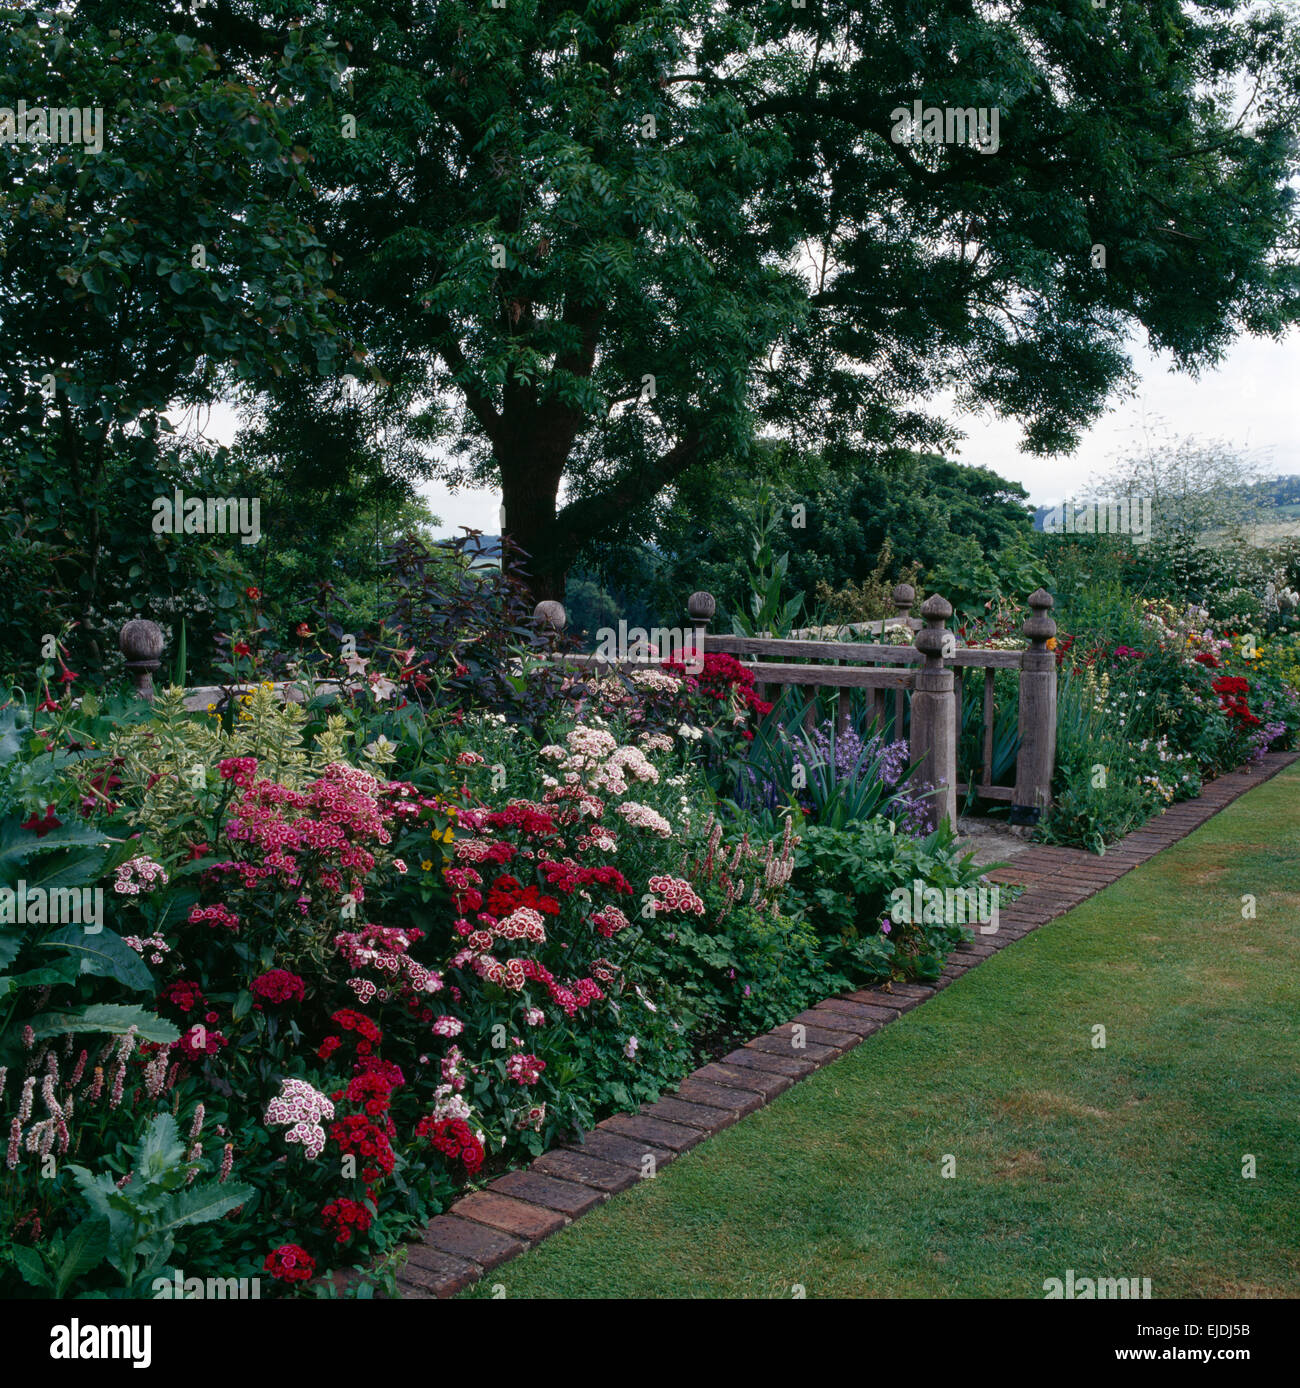 Pink and red sweet Williams and peonies in border with brick paved edging in country garden in summer - Stock Image